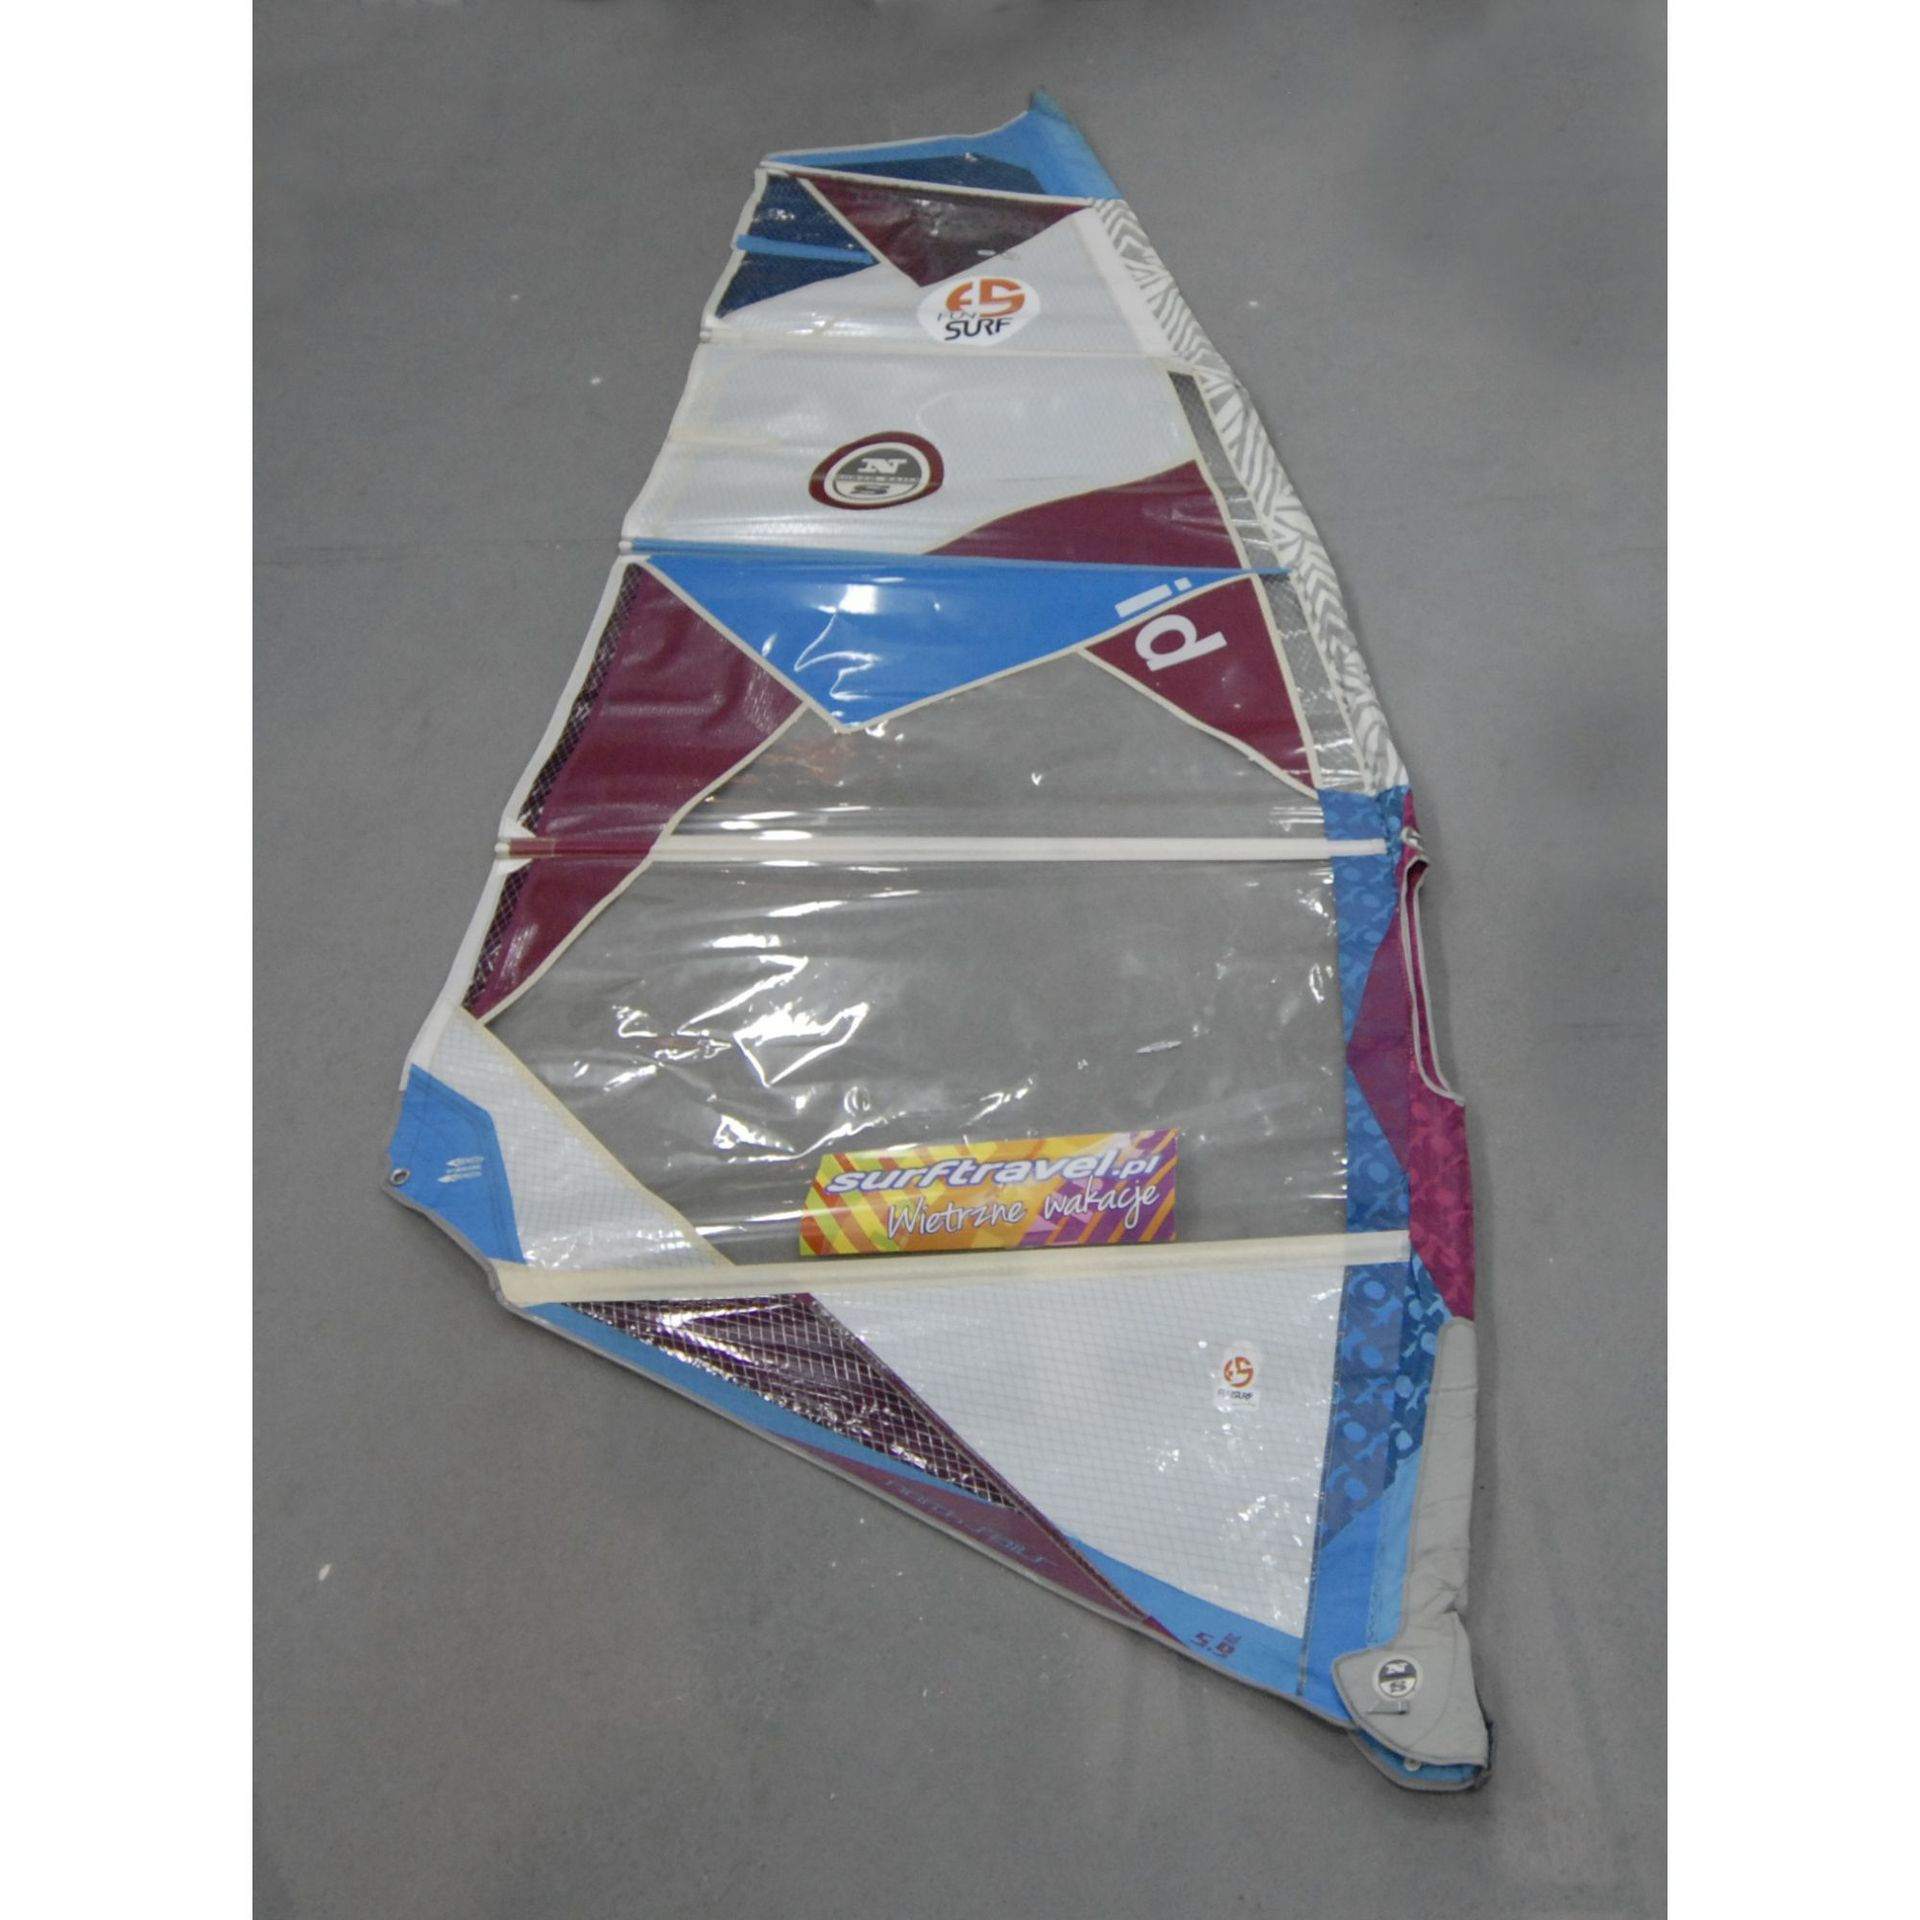 ŻAGIEL WINDSURFINGOWY NORTH SAILS  ID 5.9 - FREERACE  (155917)